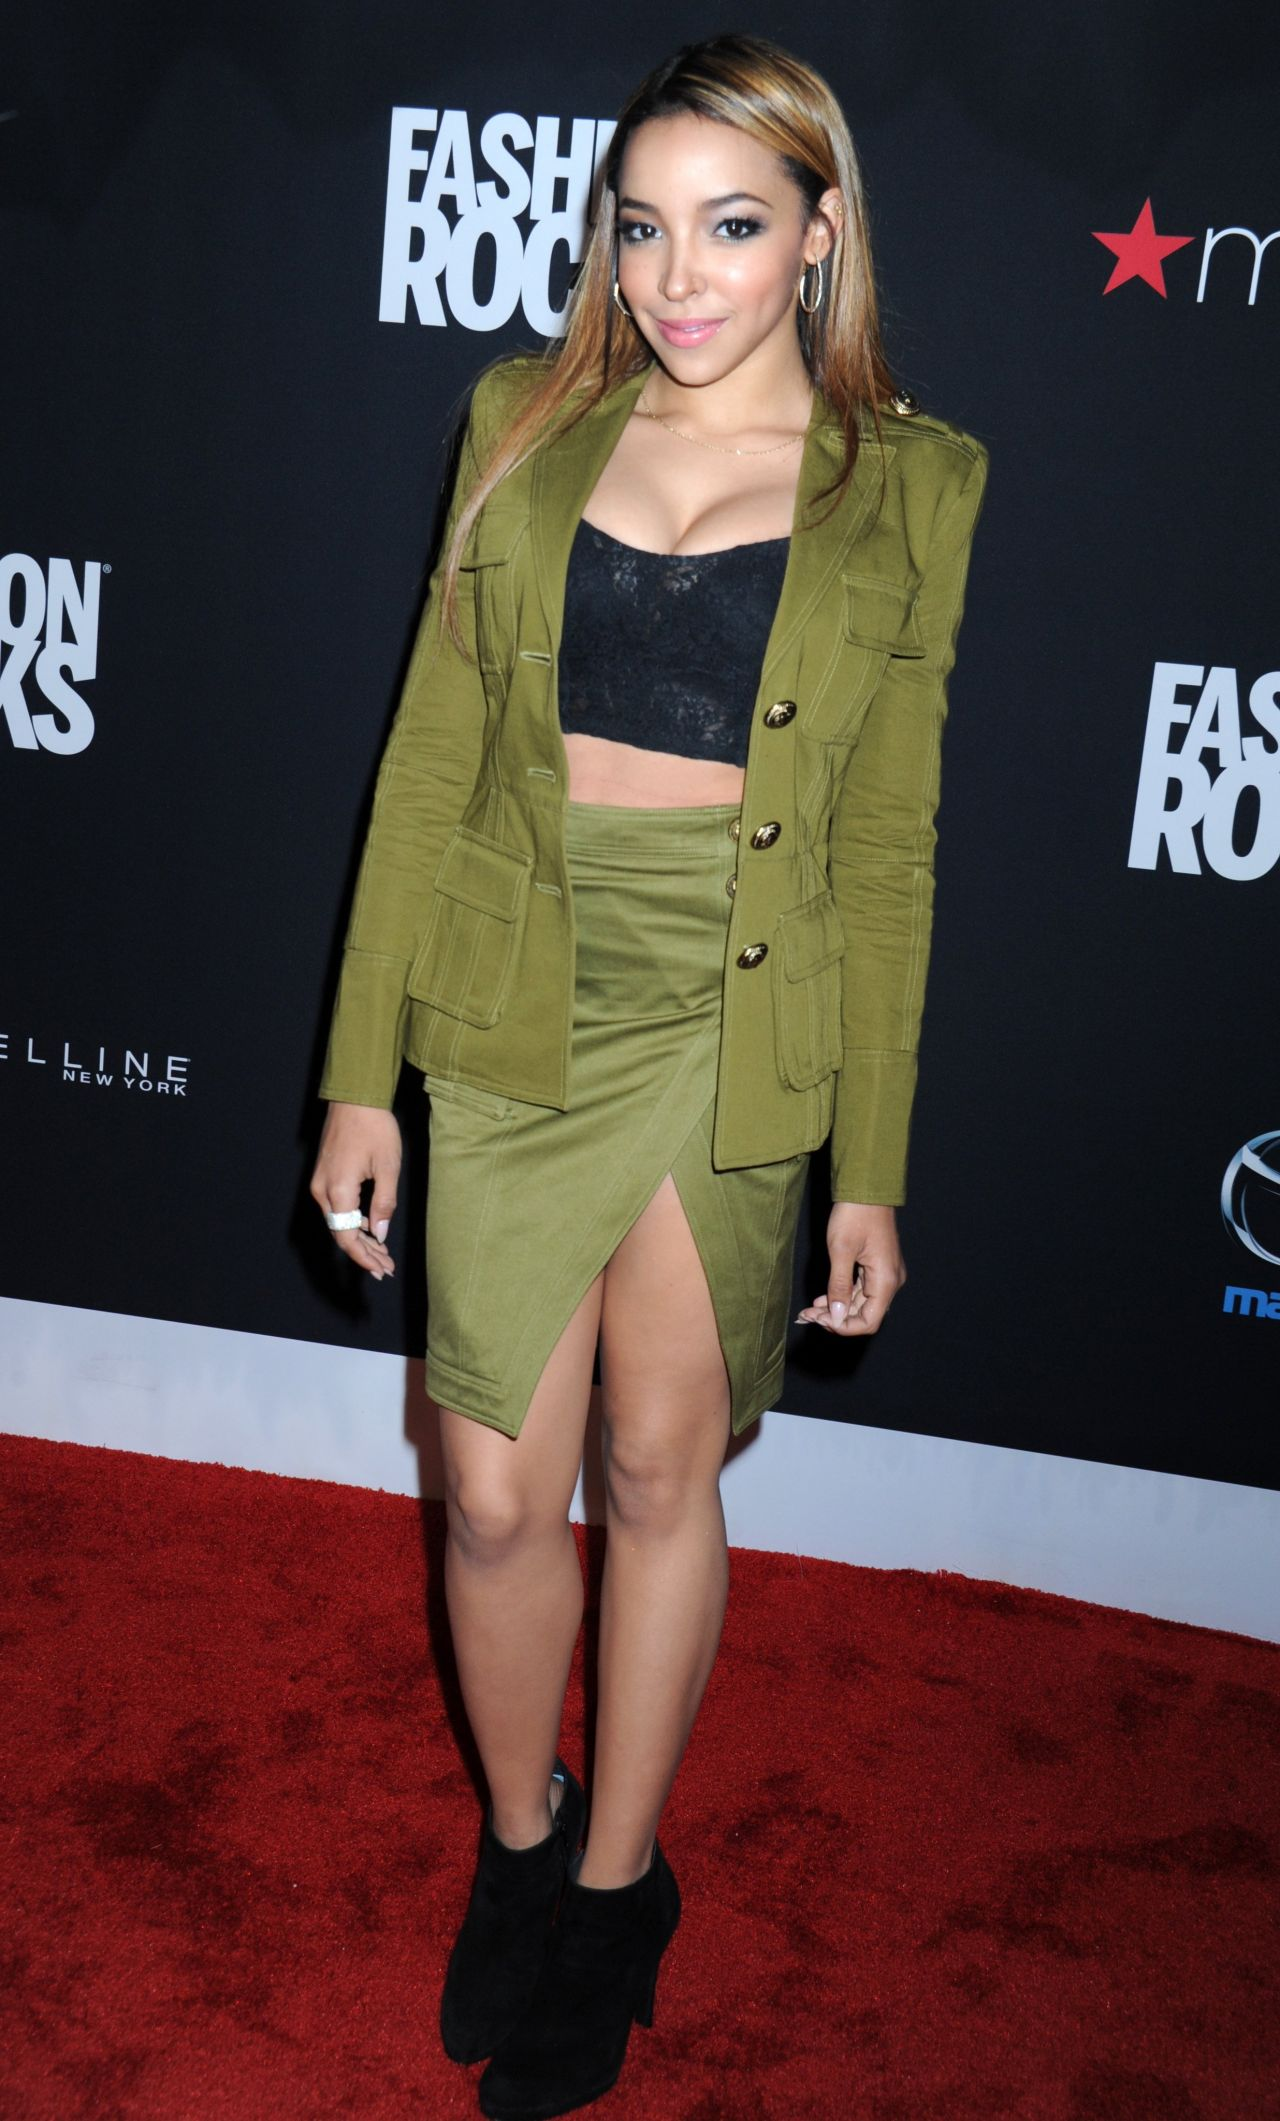 Tinashe - Fashion Rocks 2014 in New York City